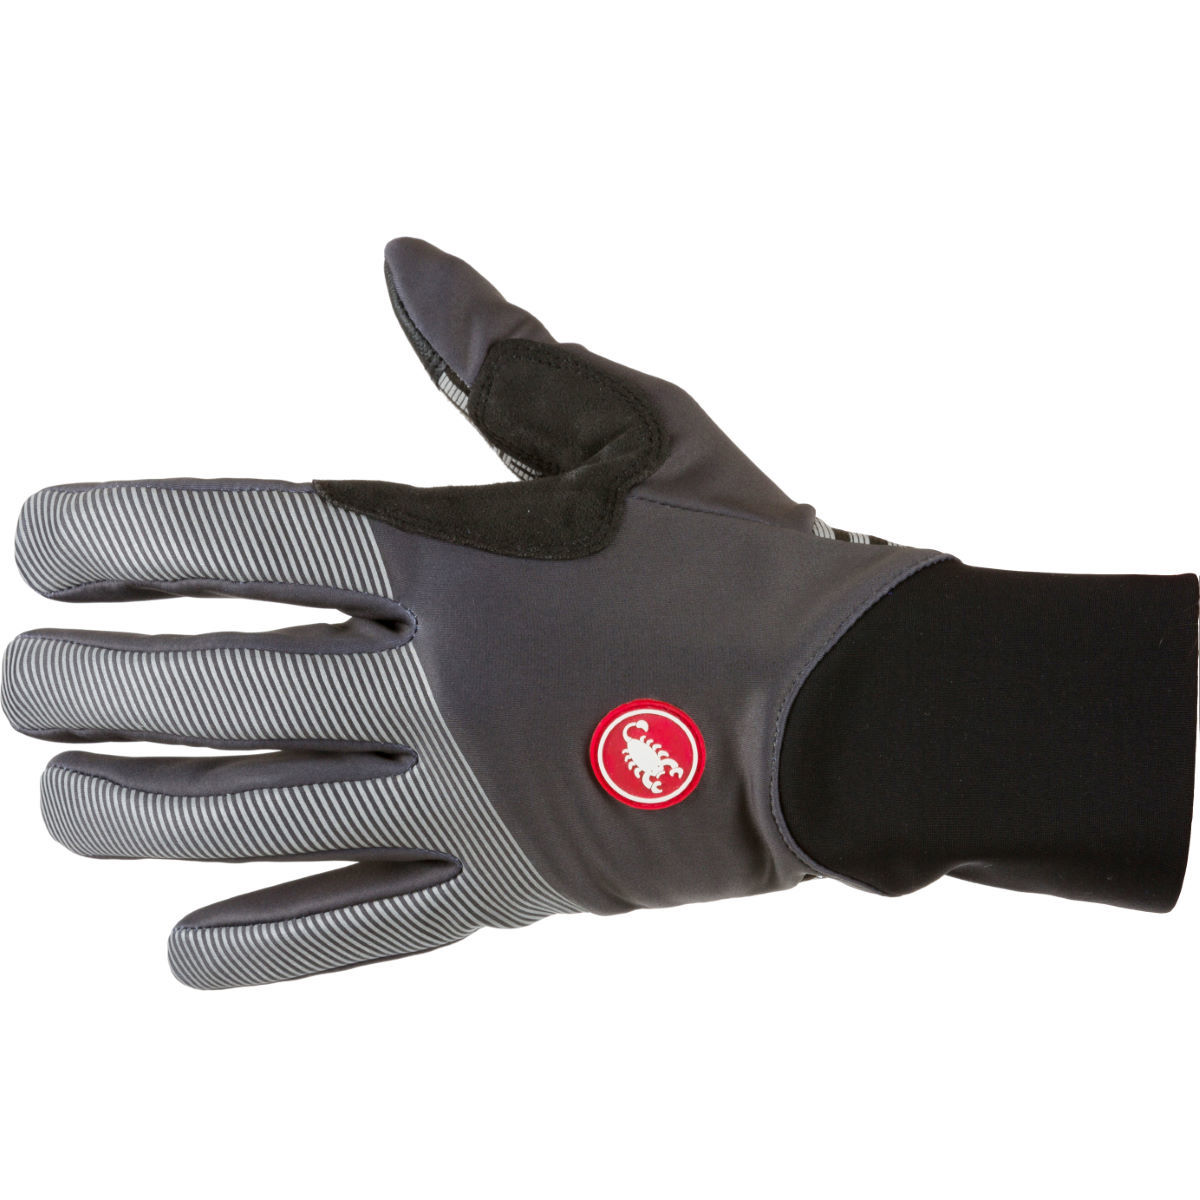 Castelli Scalda Elite Winter Gloves - In Red or Black - Price Given for Red.